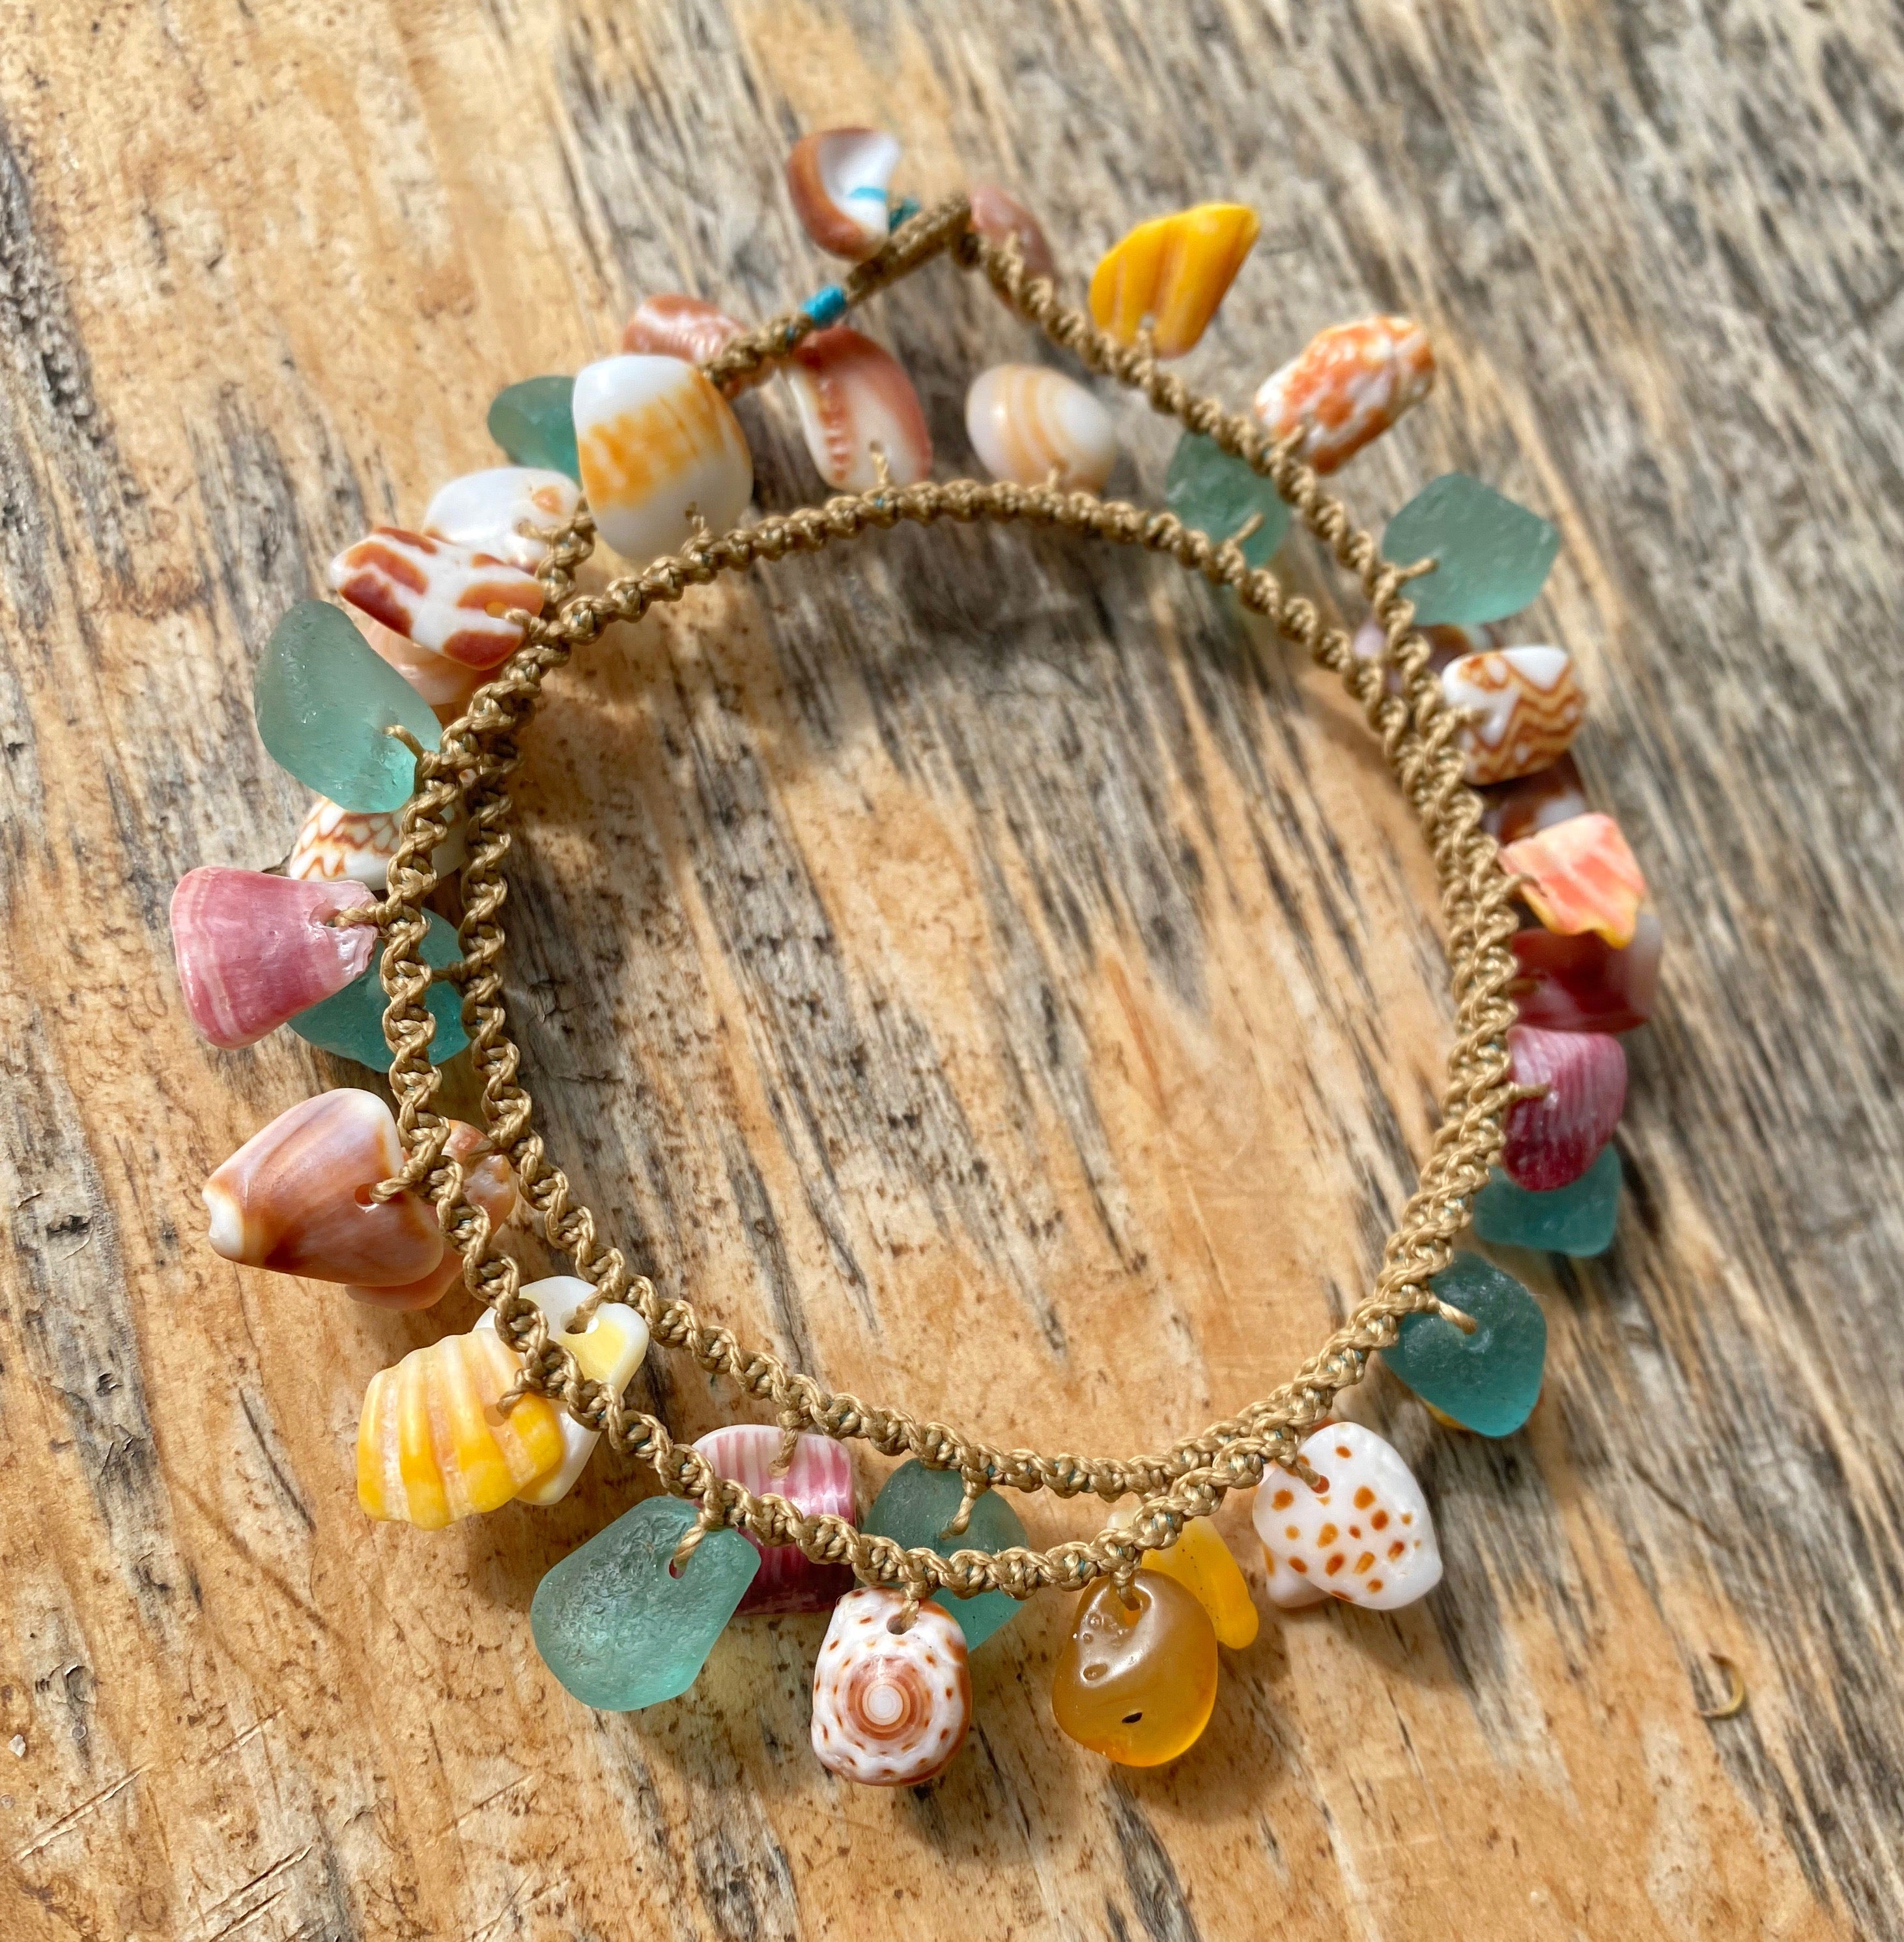 Double Wrap Moku Bracelet MADE TO ORDER (Sunny Skies)